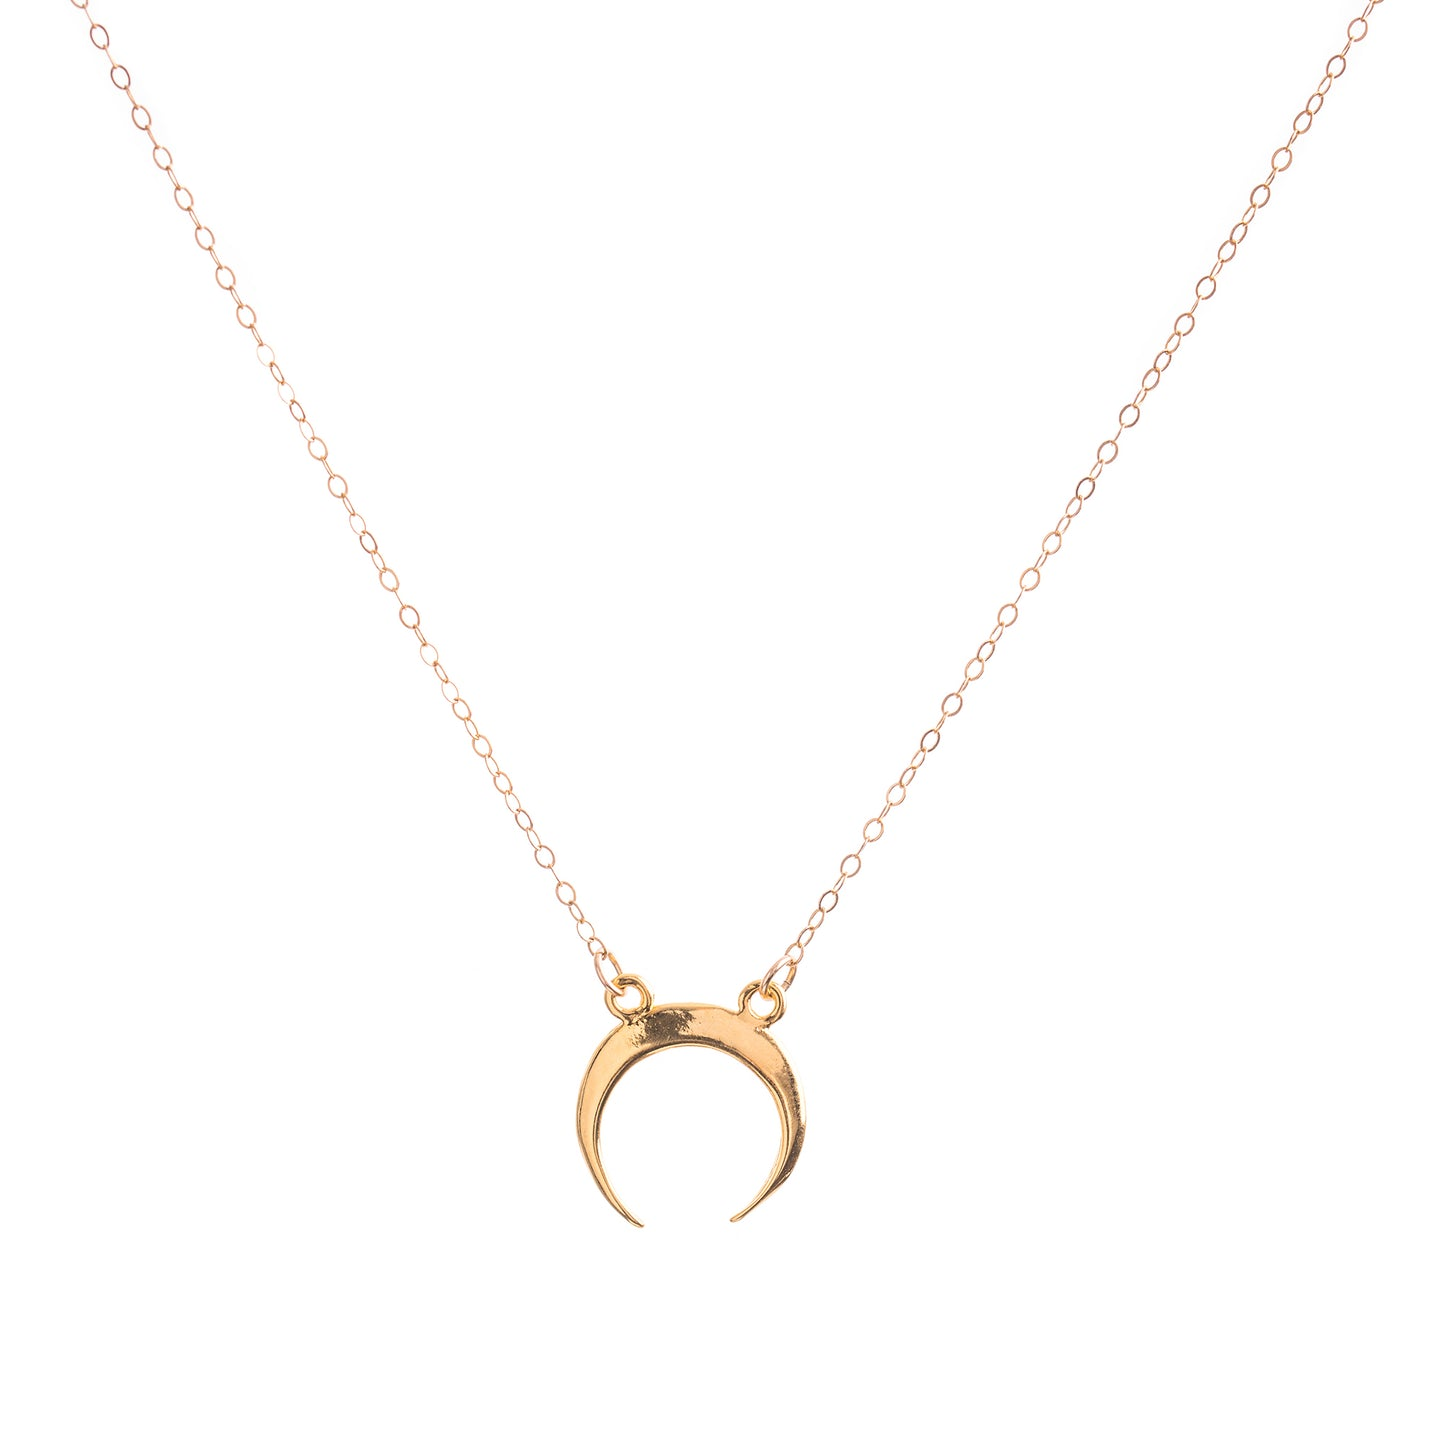 Minimal Gold Crescent Necklace